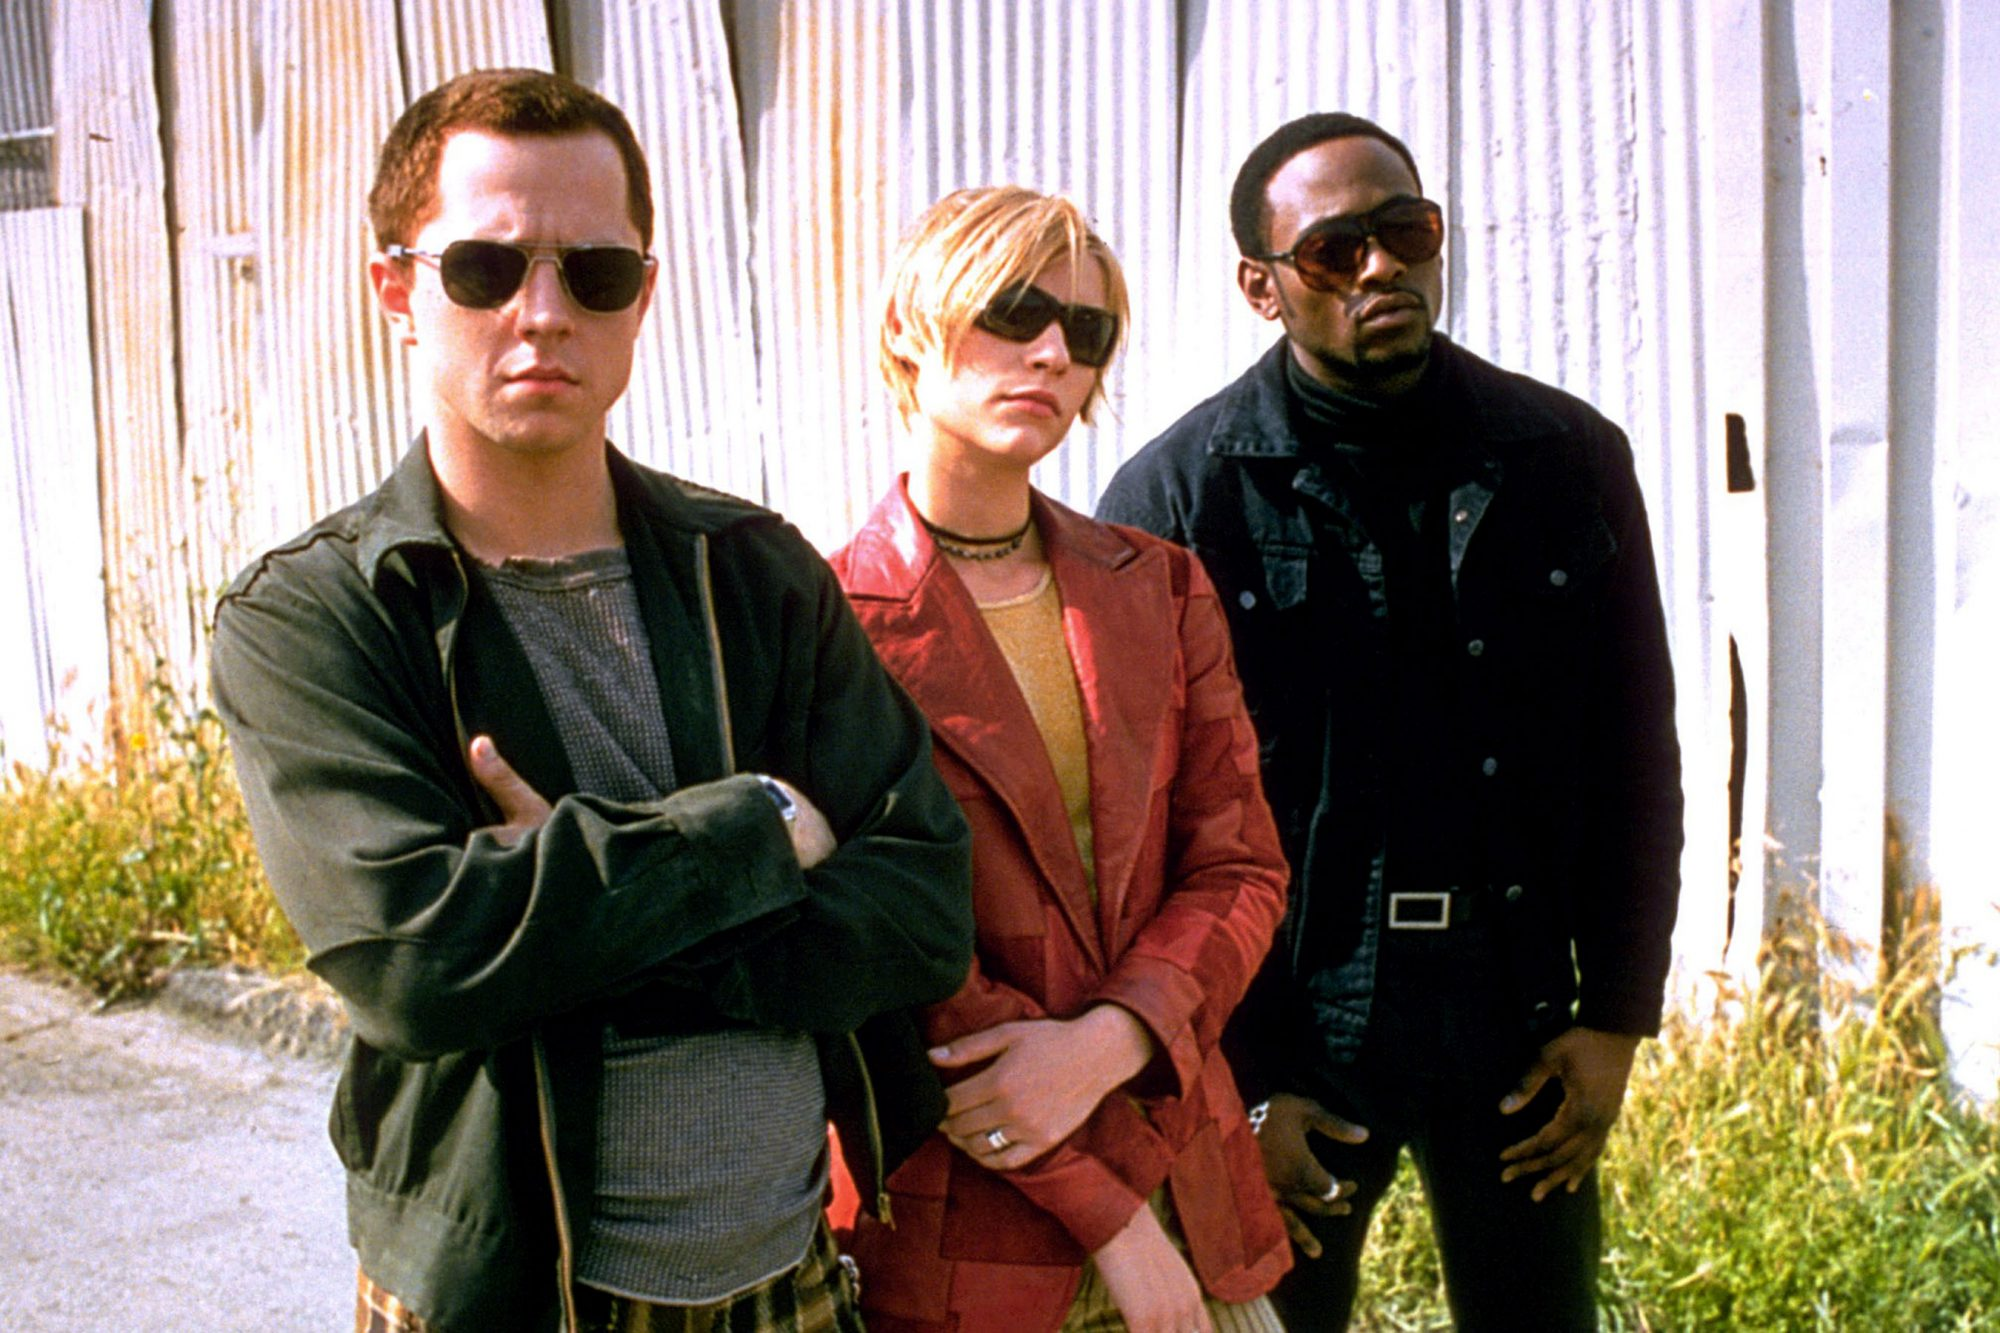 THE MOD SQUAD, Giovanni Ribisi, Claire Danes, Omar Epps, 1999, (c) MGM/courtesy Everett Collection